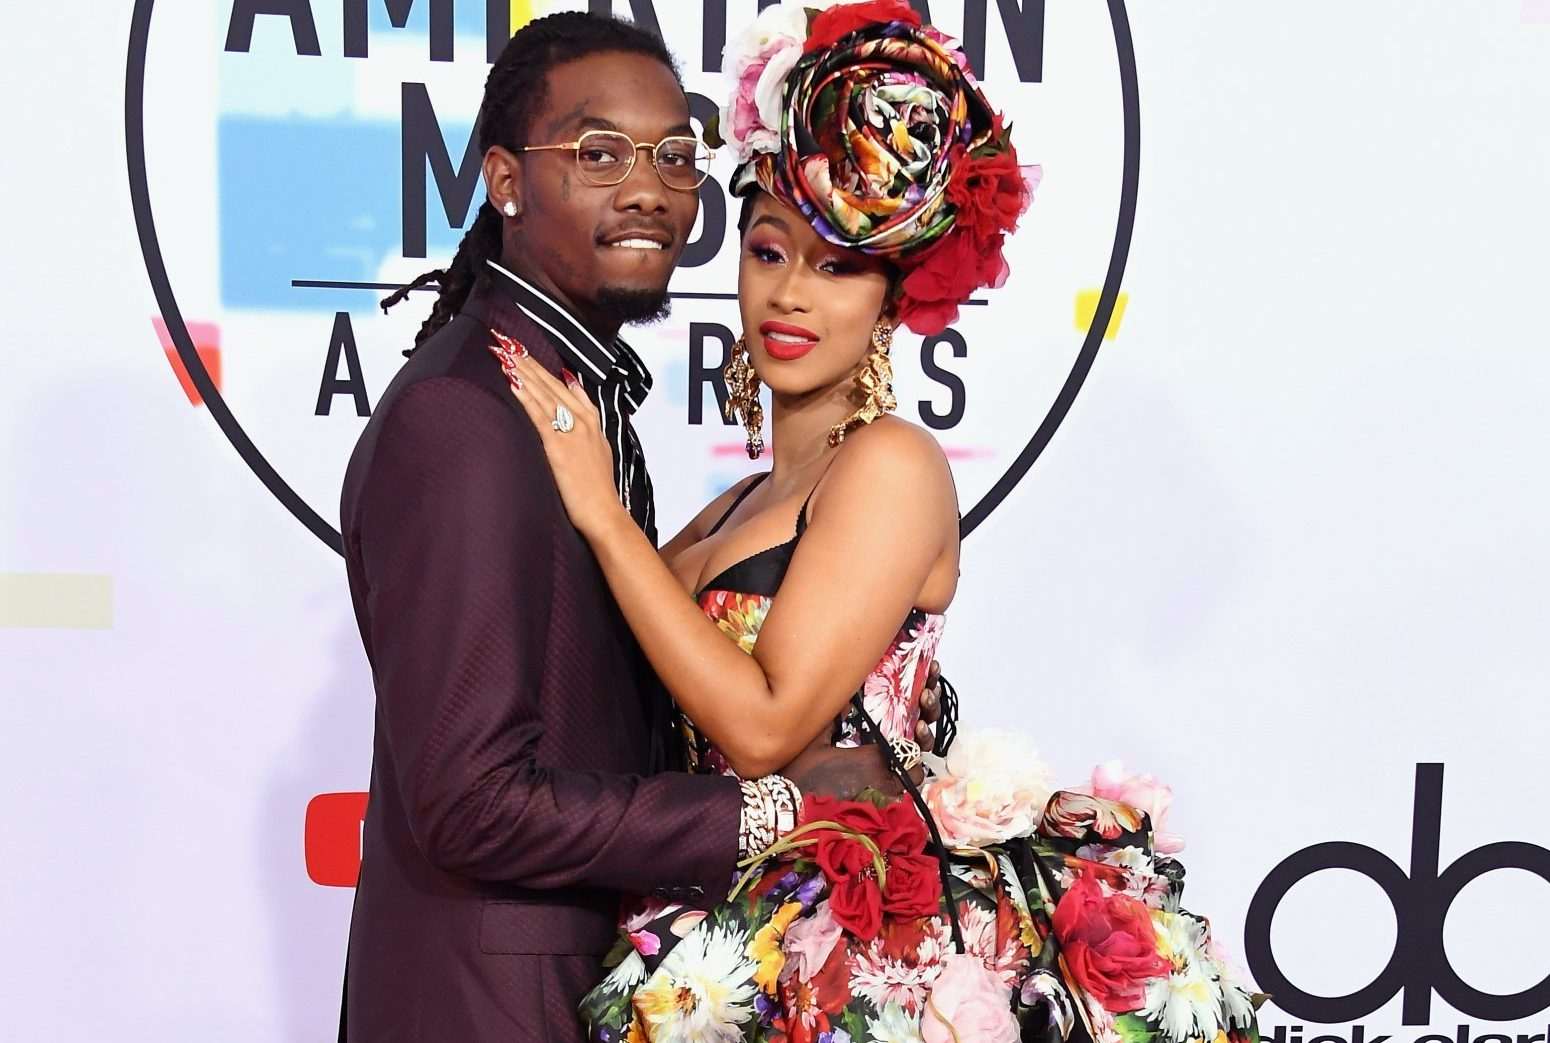 LOS ANGELES, CA - OCTOBER 09: Offset of Migos (L) and Cardi B attend the 2018 American Music Awards at Microsoft Theater on October 9, 2018 in Los Angeles, California. (Photo by Steve Granitz/WireImage)